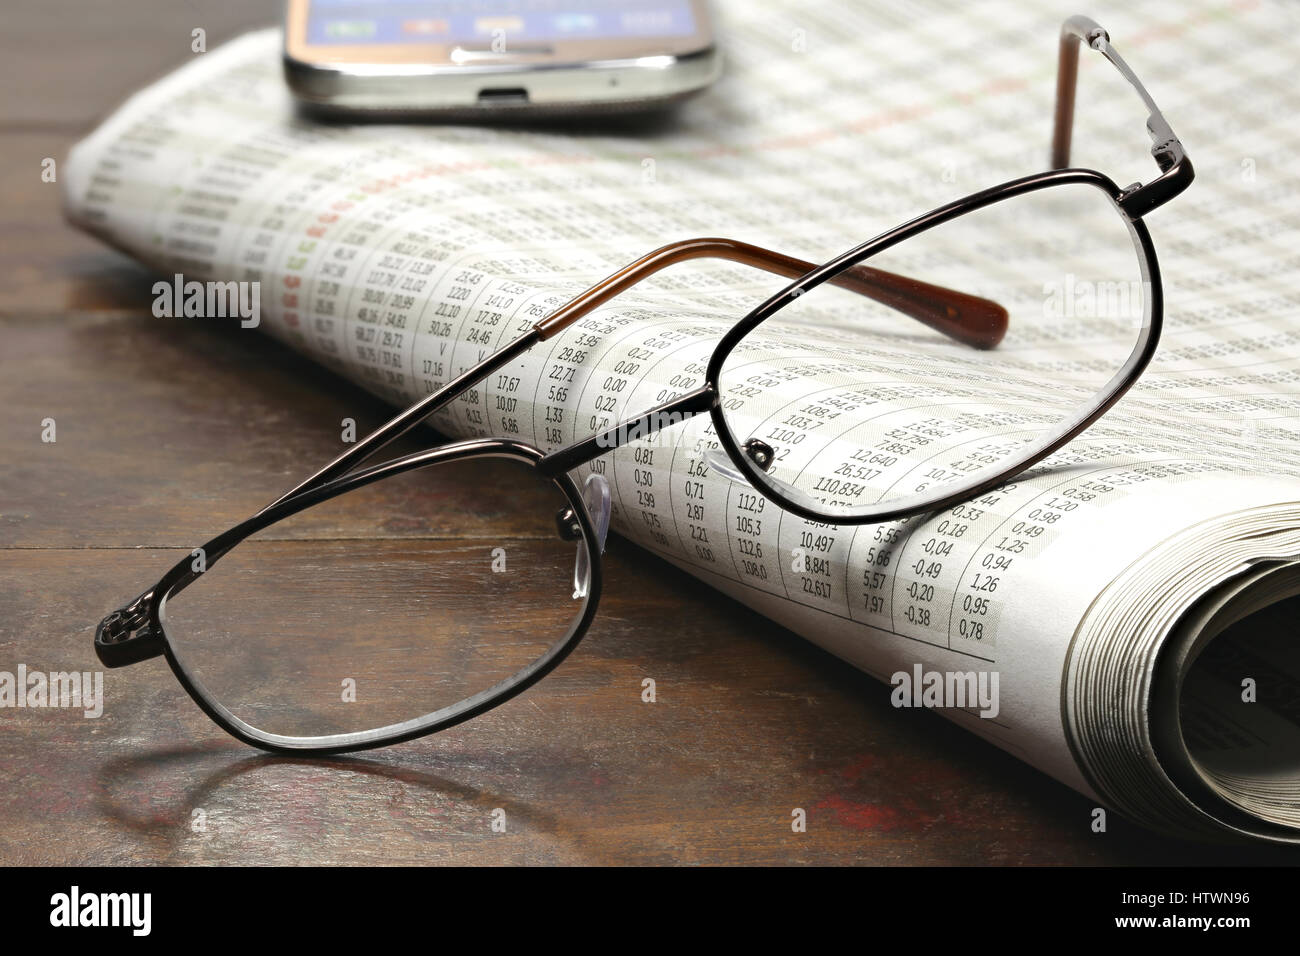 newspaper with stock quotations - Stock Image